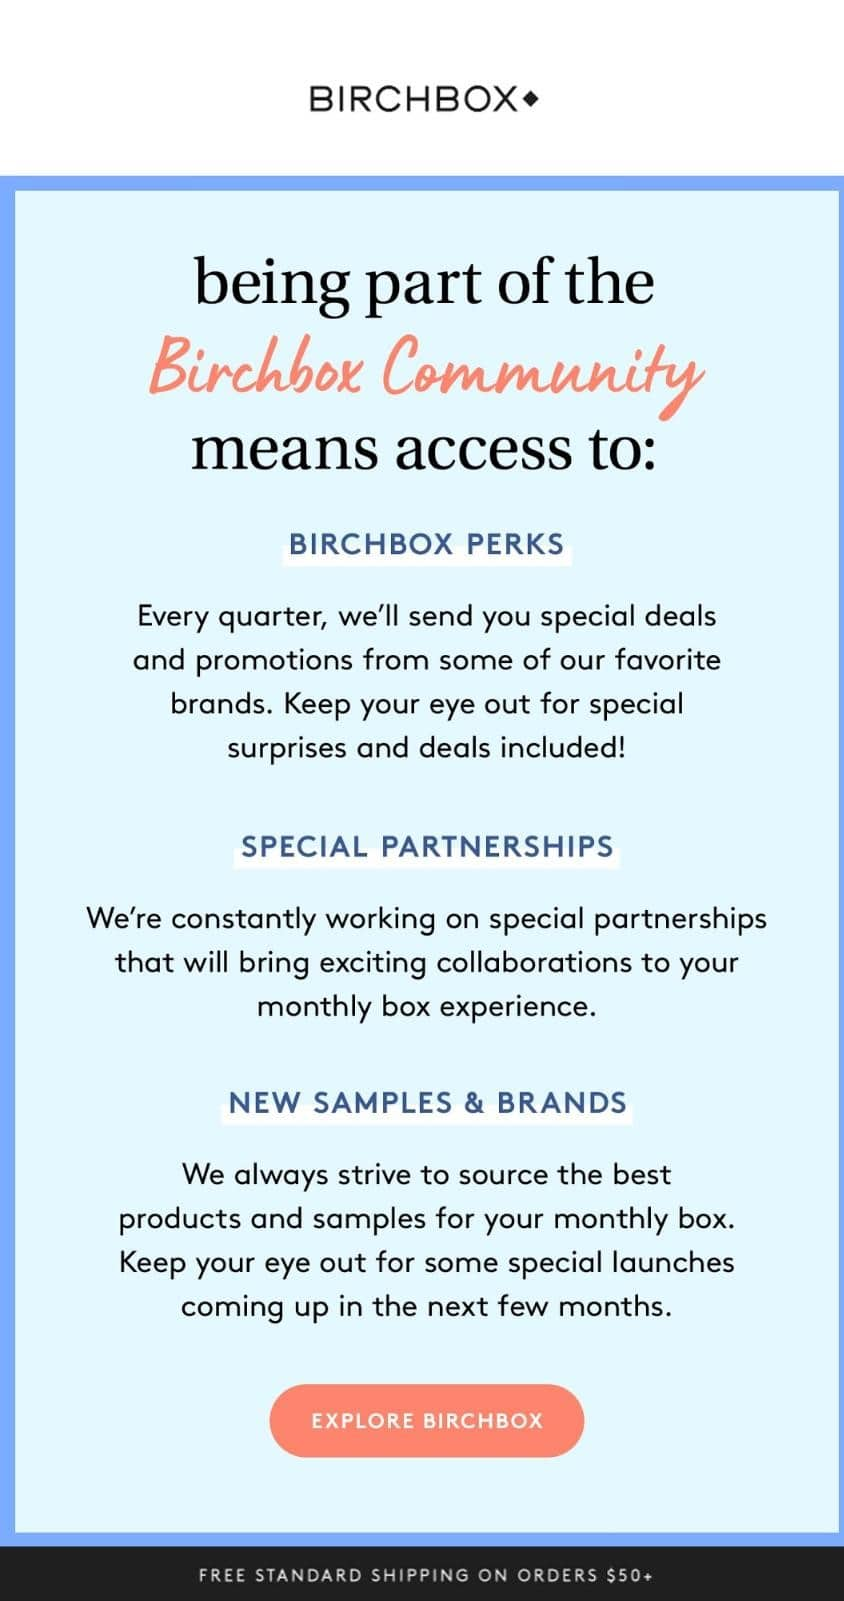 Automated welcome email series from Birchbox